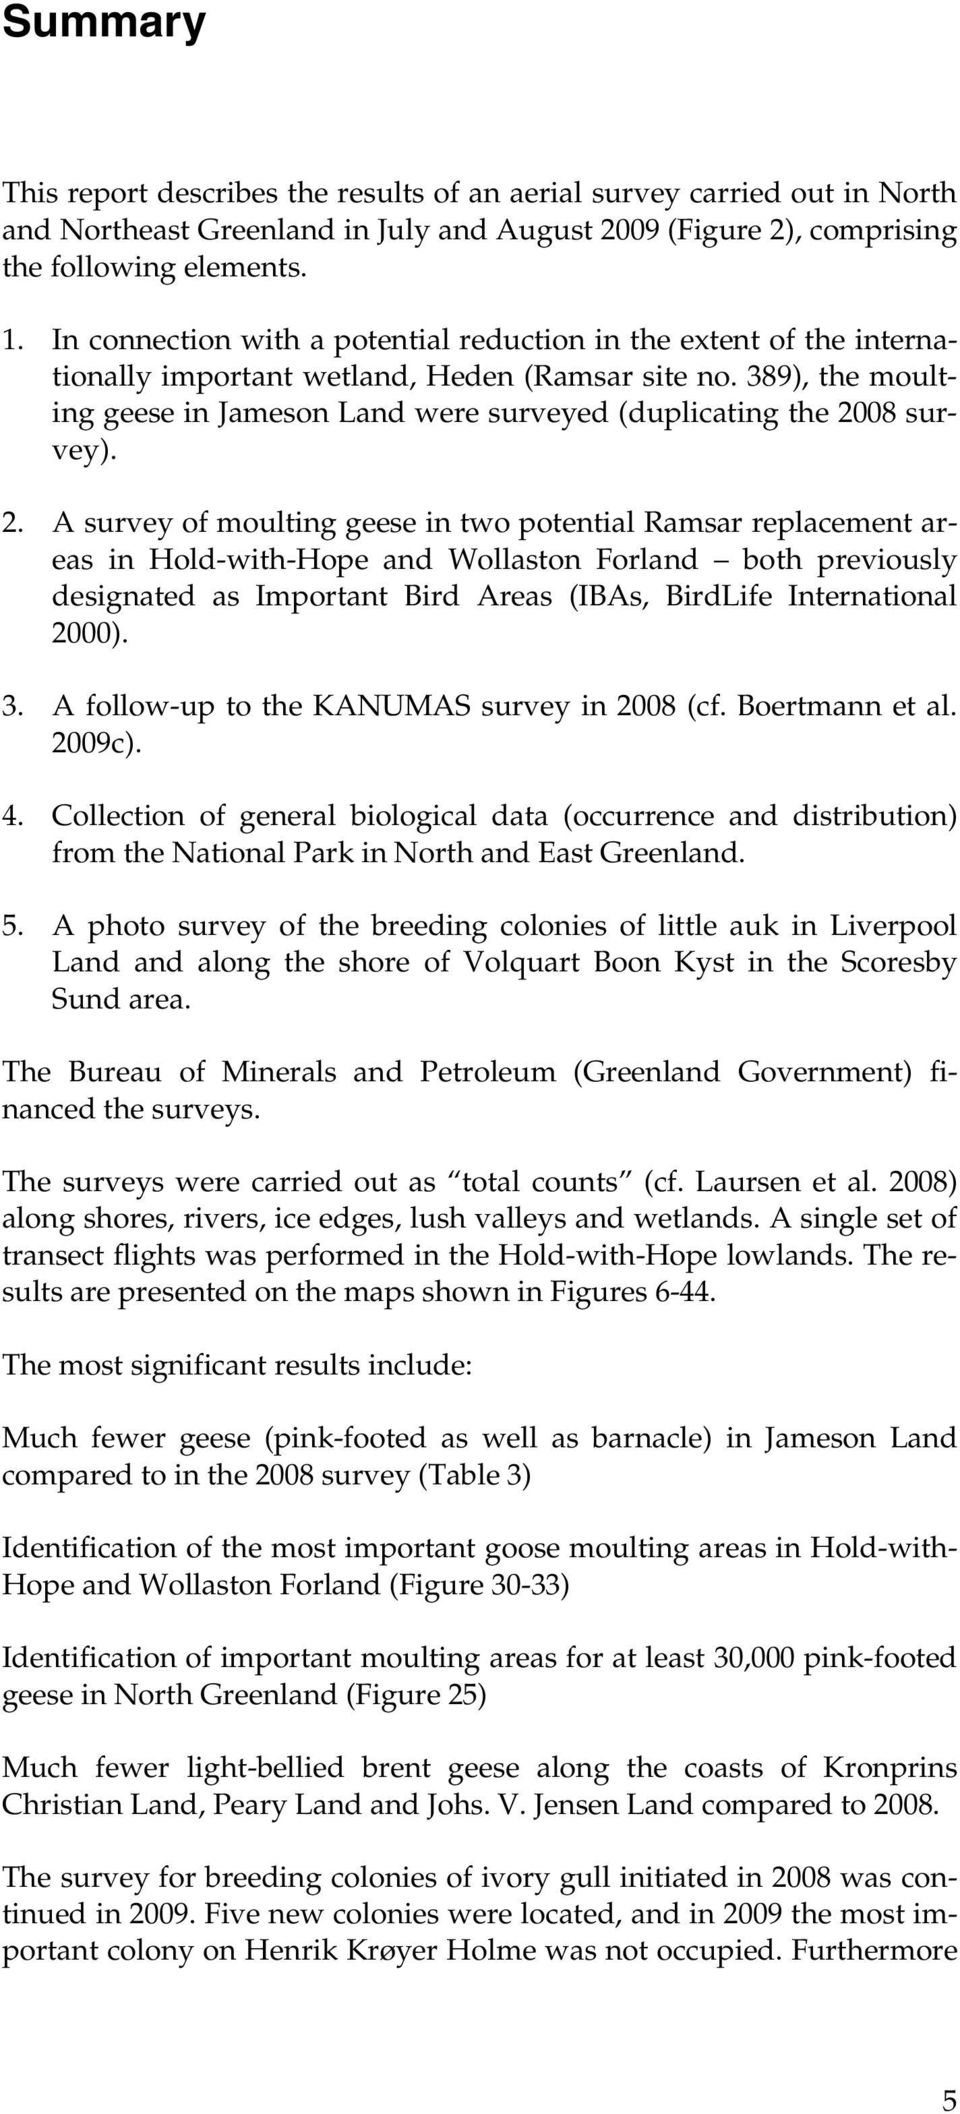 389), the moulting geese in Jameson Land were surveyed (duplicating the 20